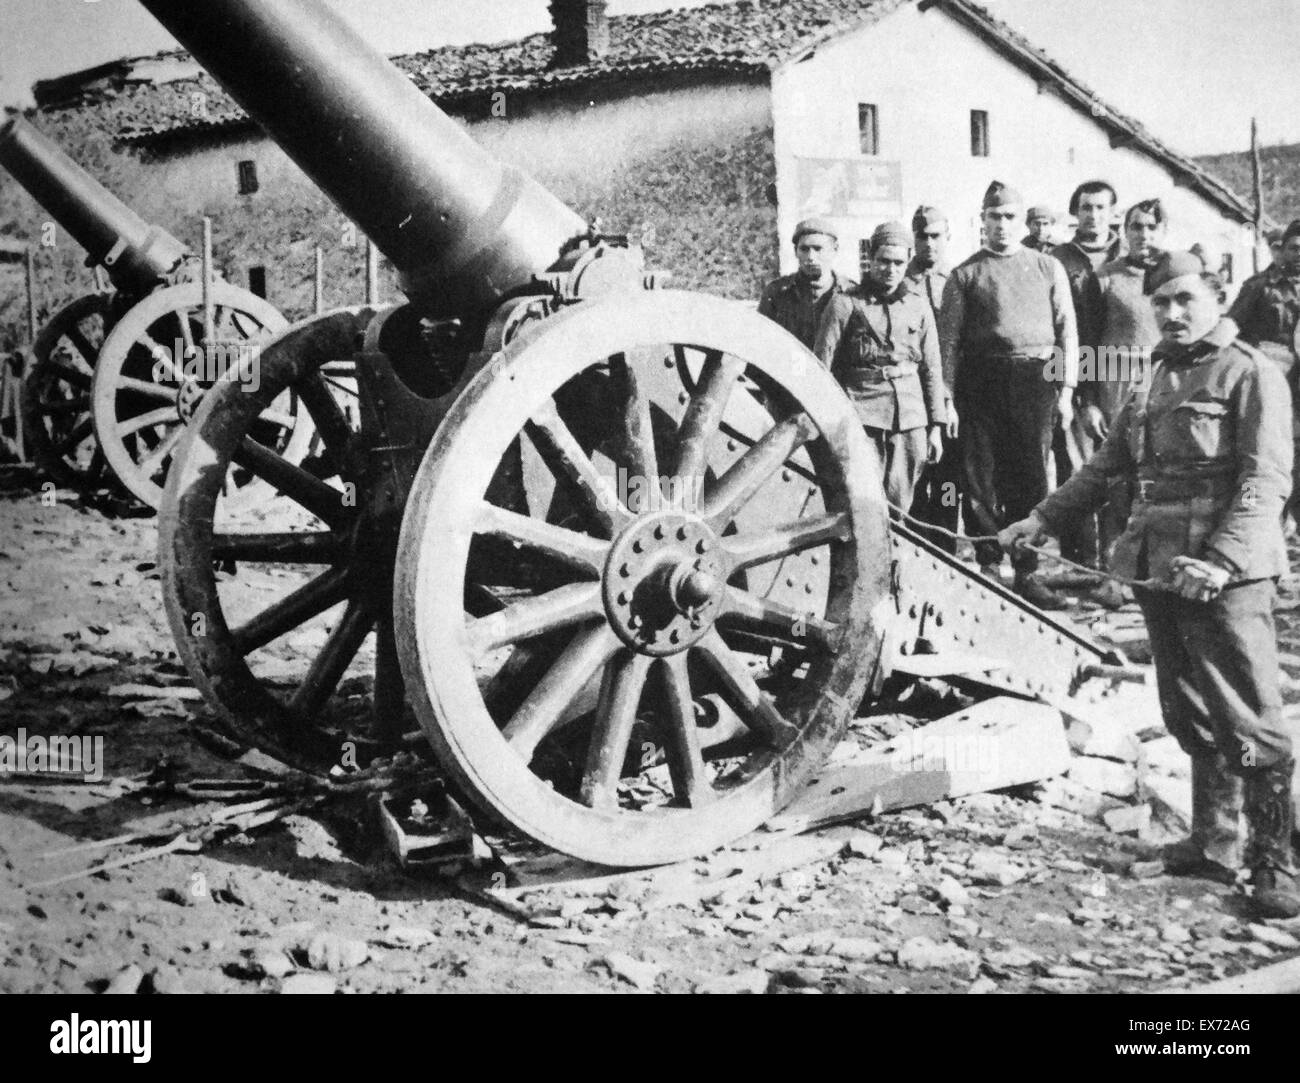 Republican artillery unit during the Spanish Civil War - Stock Image